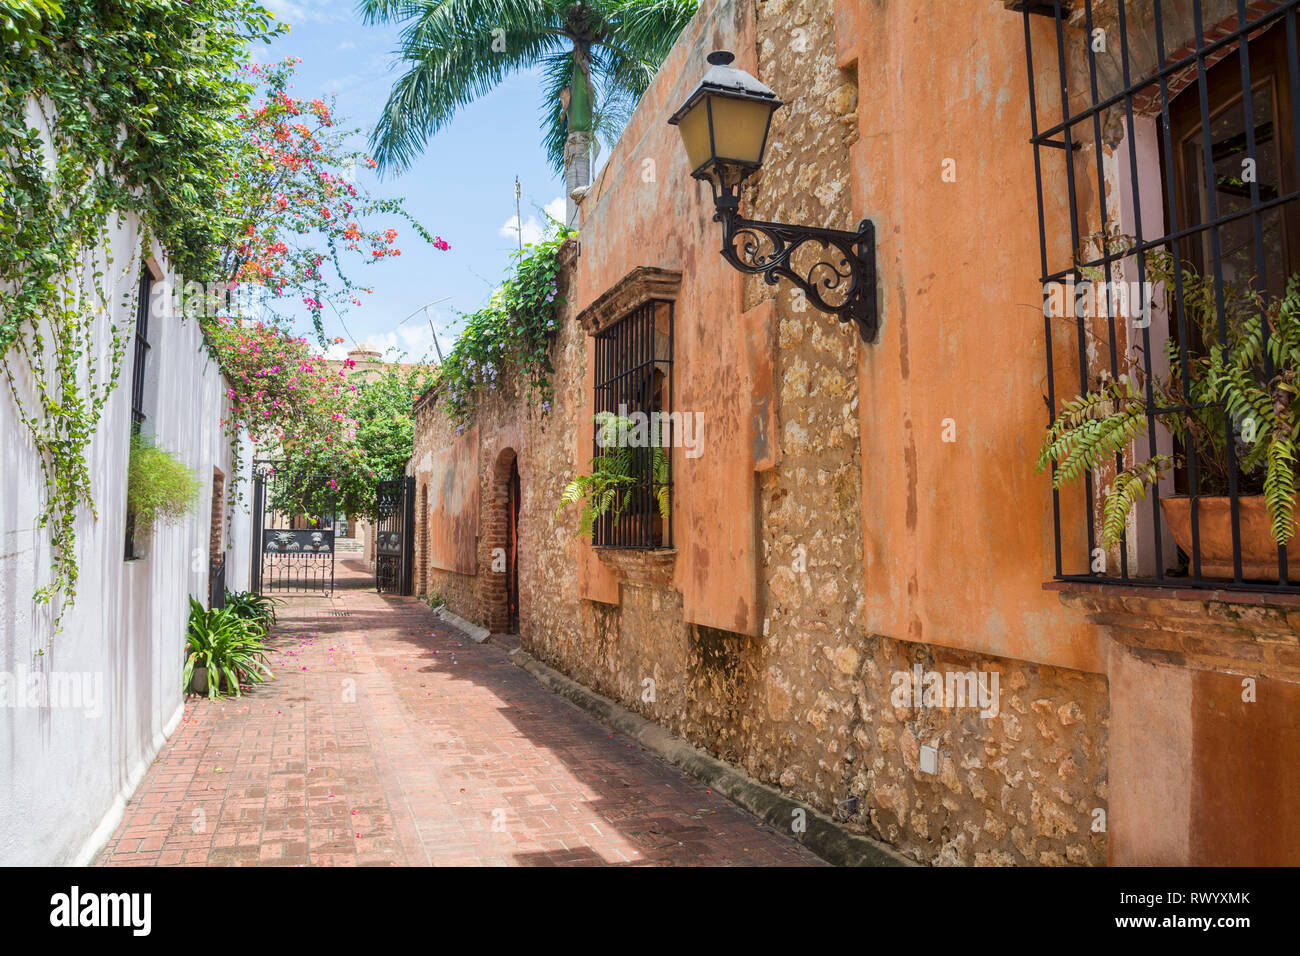 The Callejón de los Curas. It is a tiny passage, barely a splendid block paved with bricks that shaded by the leaves of a generous and ornamented mang - Stock Image